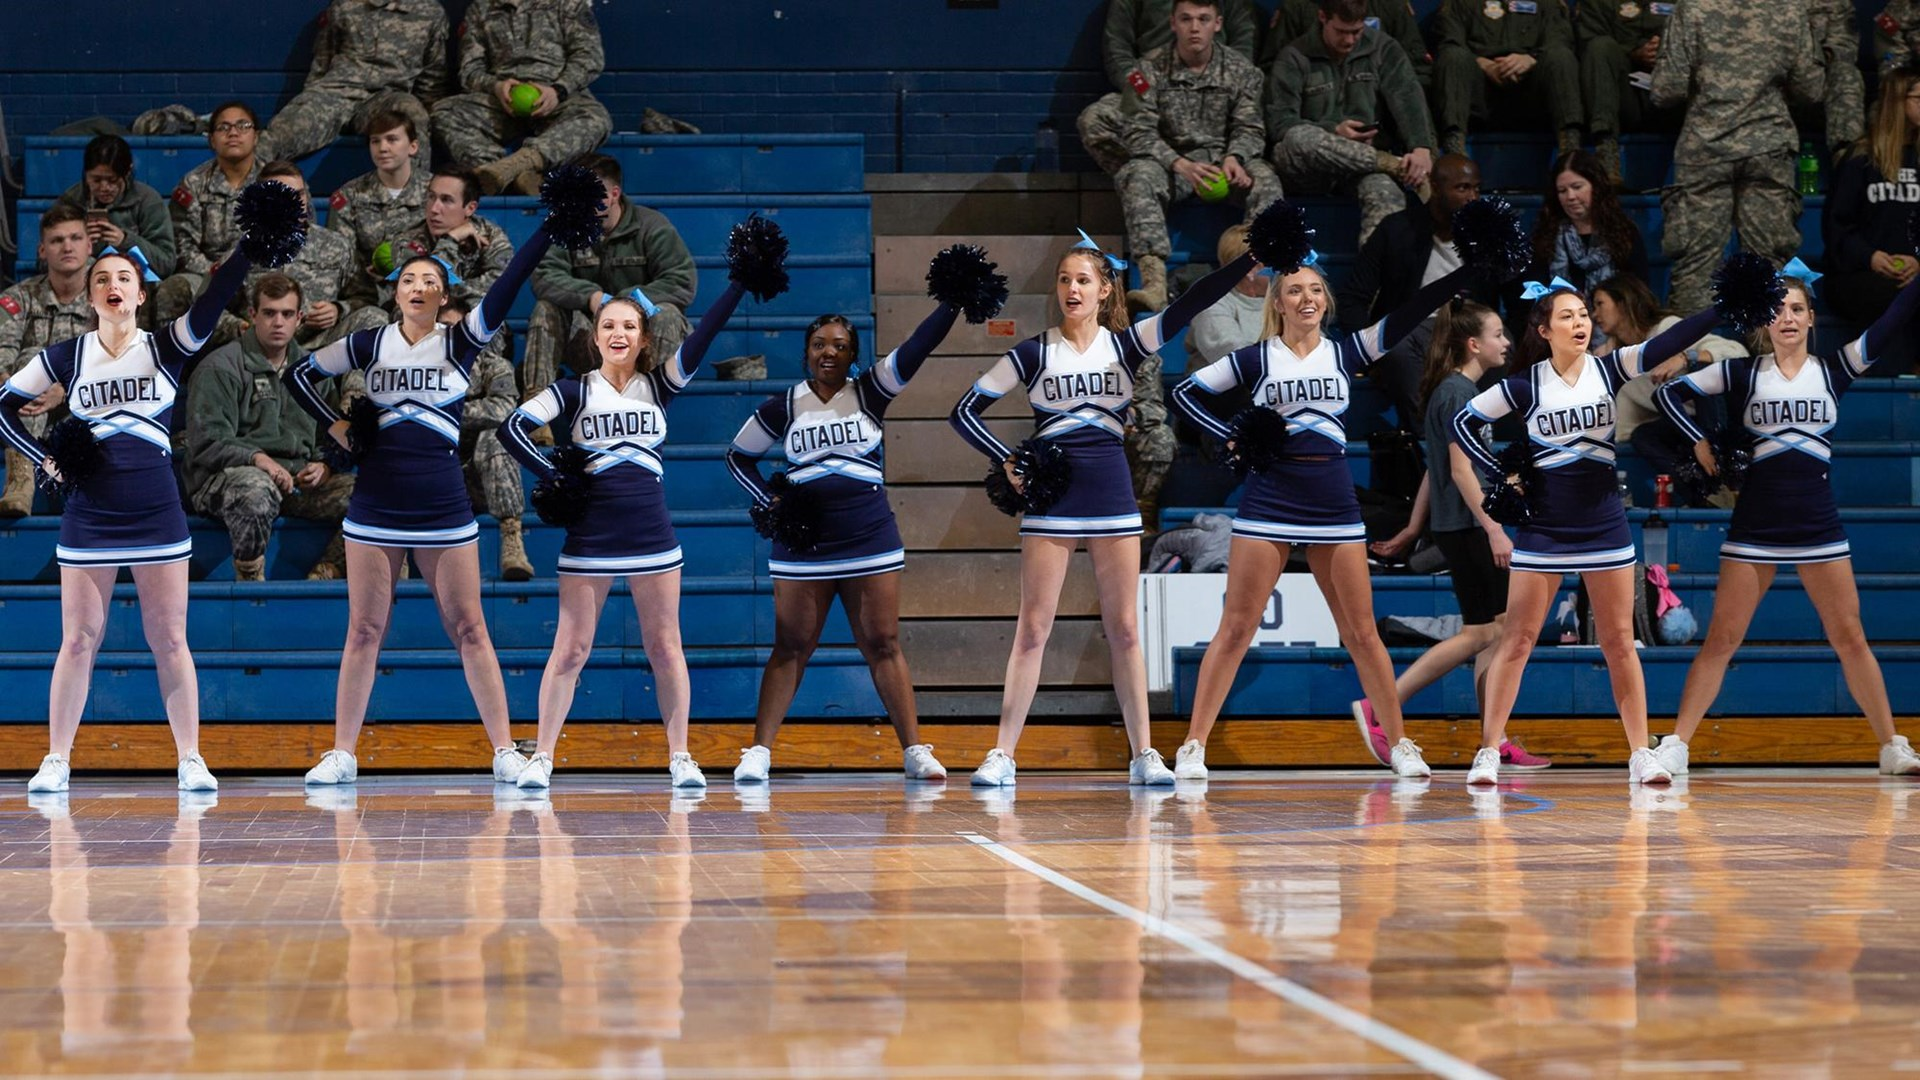 hight resolution of citadel athletics hosting tryouts for cheerleading and spike t bulldog